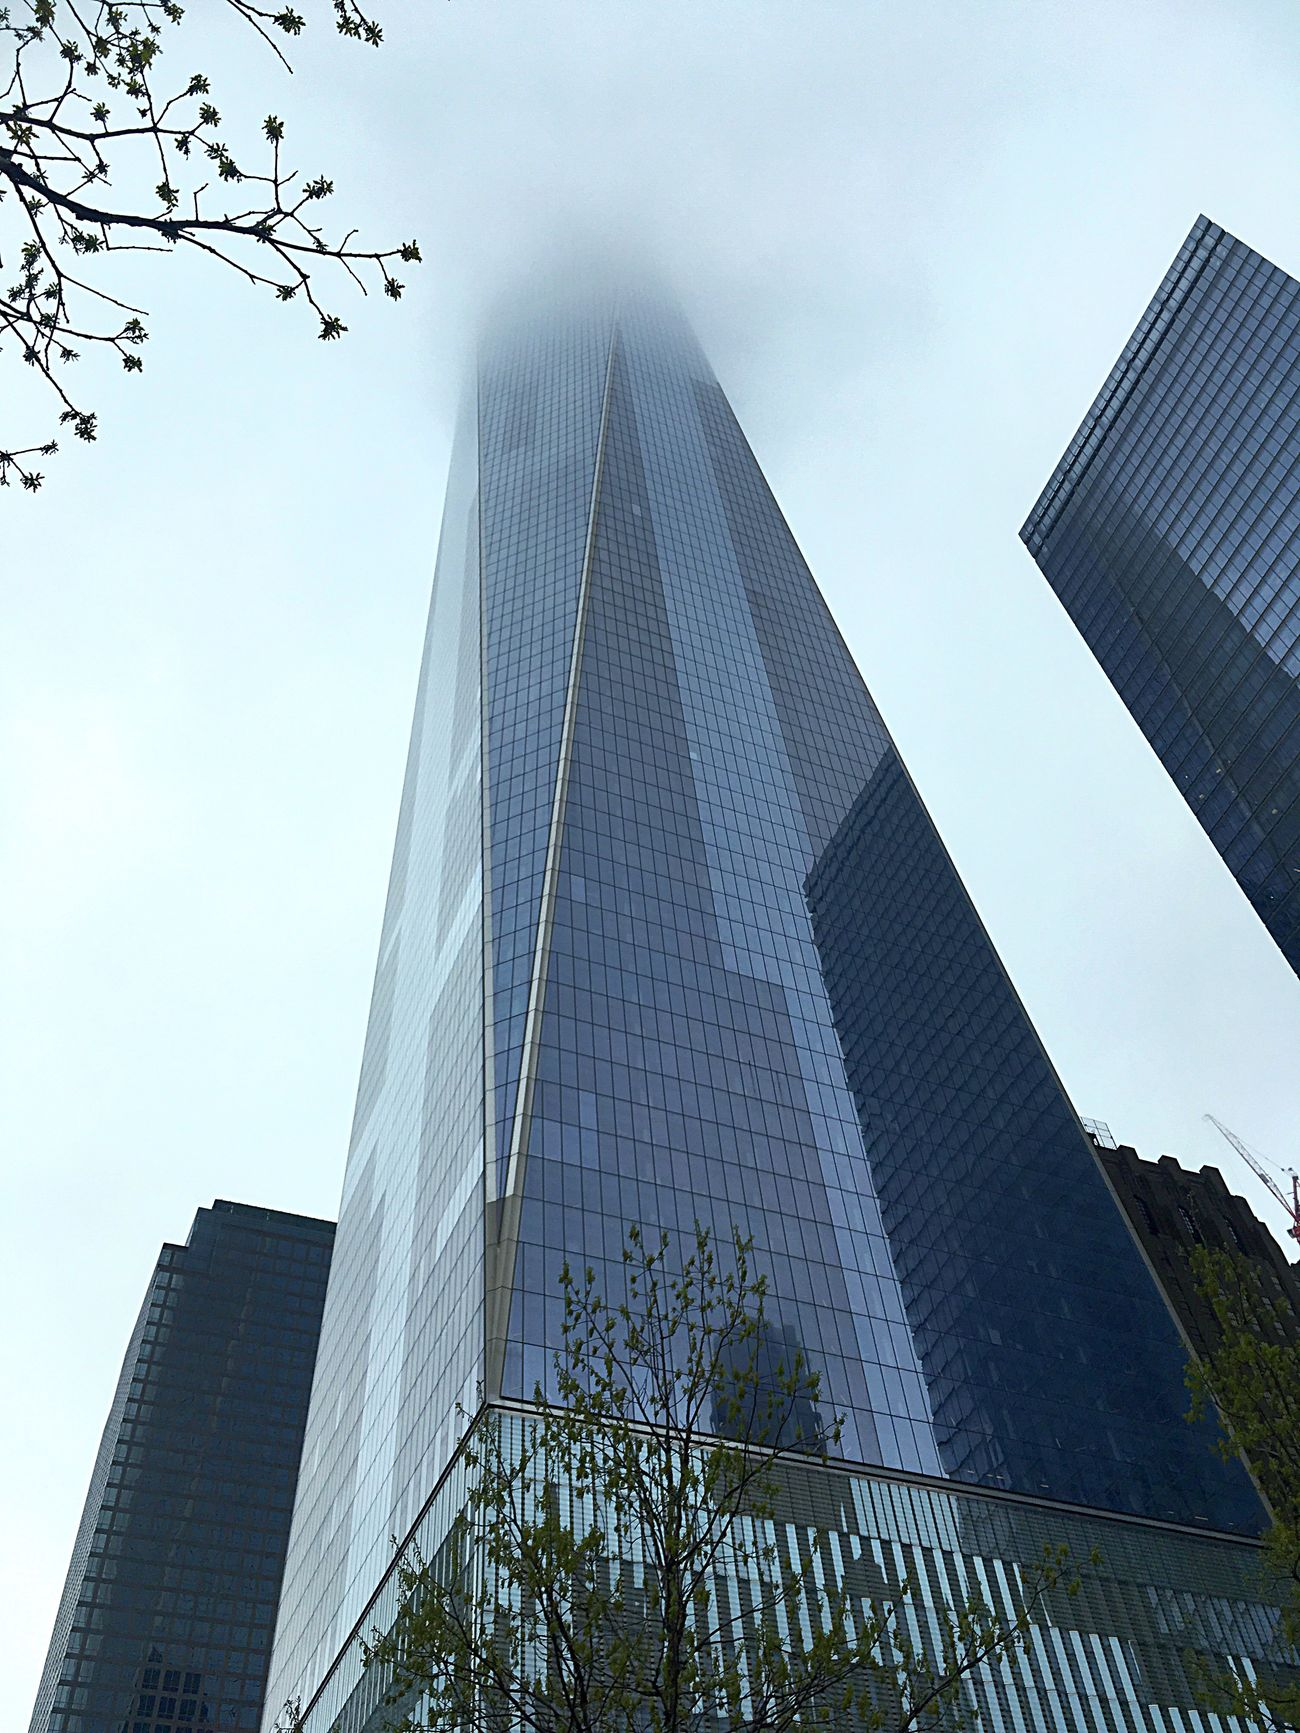 I went to see the Freedom Tower a few days ago, but it was so cloudy I couldn't see the top😅 Modern Skyscraper Freedom Tower New York New York City Manhattan Low Angle View Cloudy Foggy Memorial Streetphotography Followme MyPhotography Check This Out EyeEm Nature Lover My Unique Style Eye4photography  EyeEm EyeEm Gallery EyeEm Best Shots Follow Me No People Follow_me Cityscape Personal Perspective